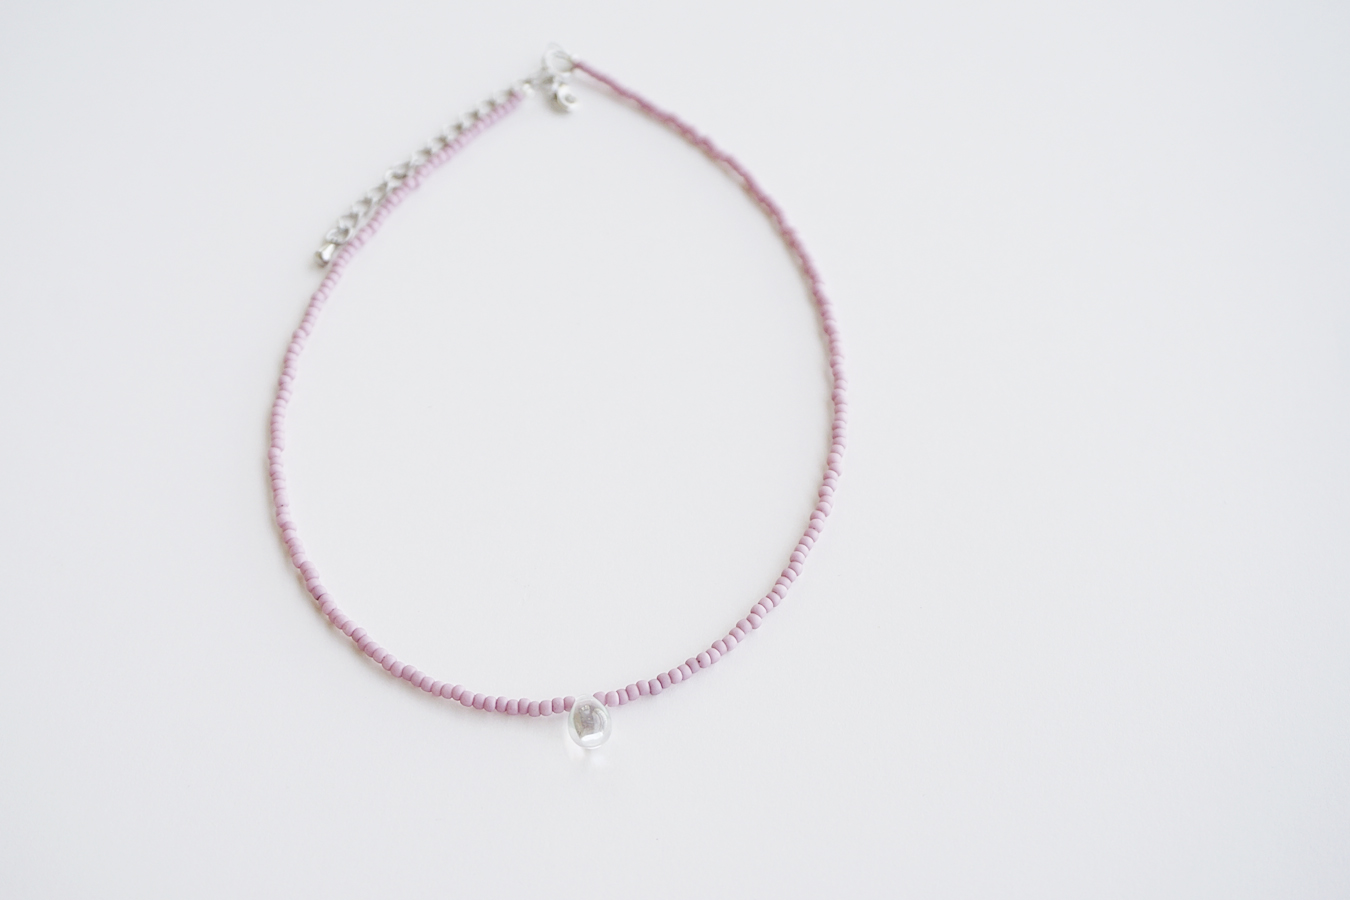 pendant products silver necklace pink crystal panhandle jewelry product ribbon image